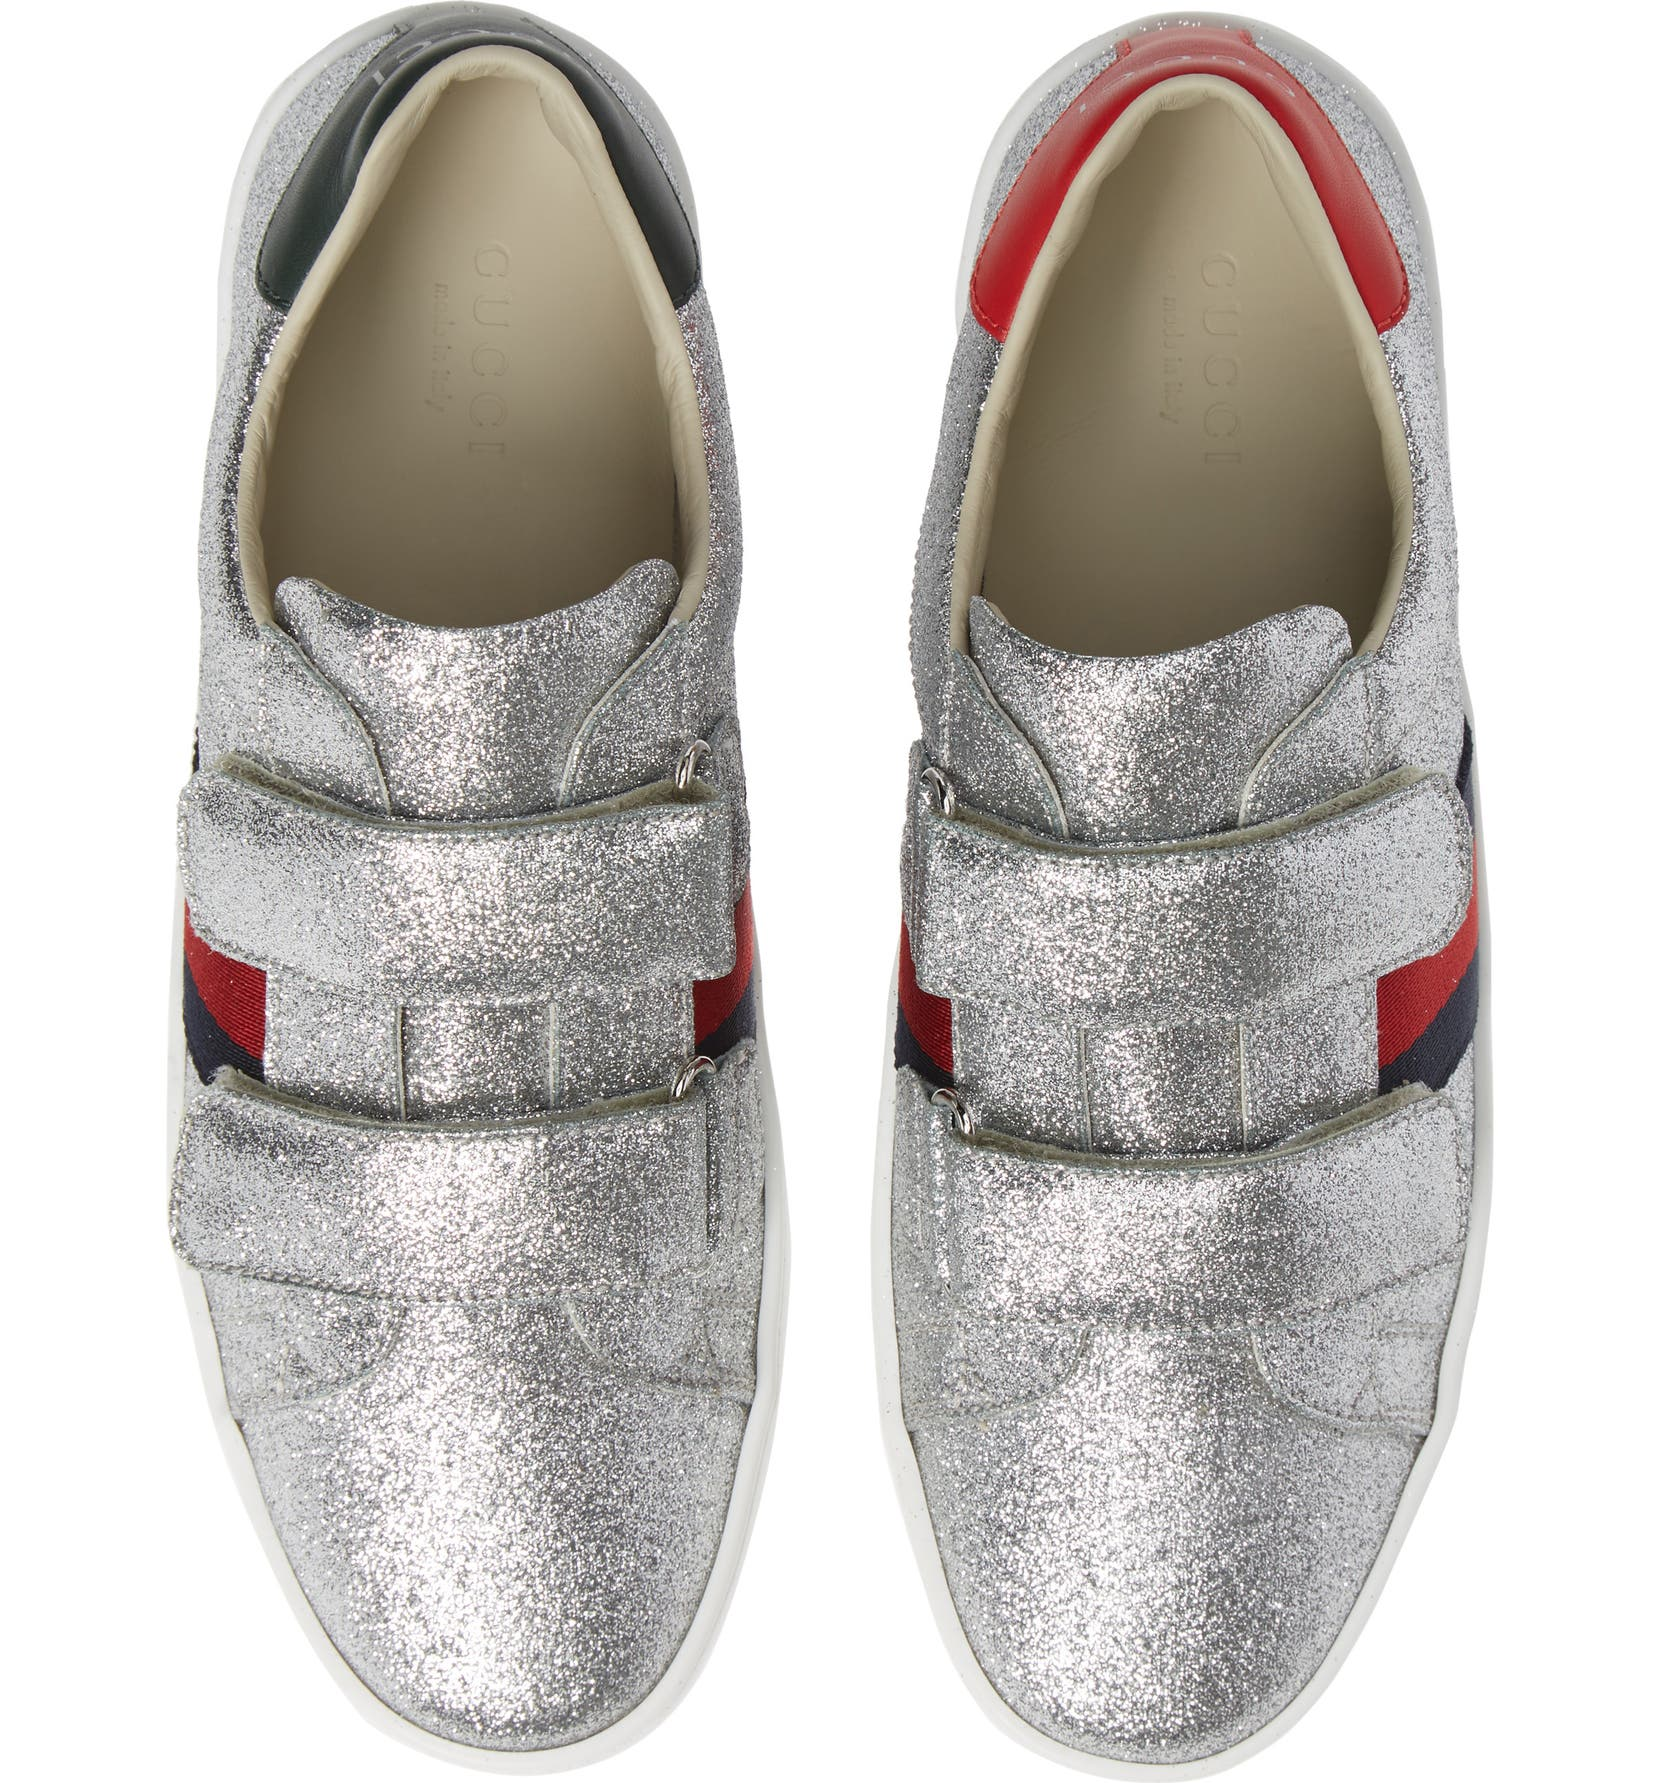 575dcbded Gucci New Ace Sneaker (Baby